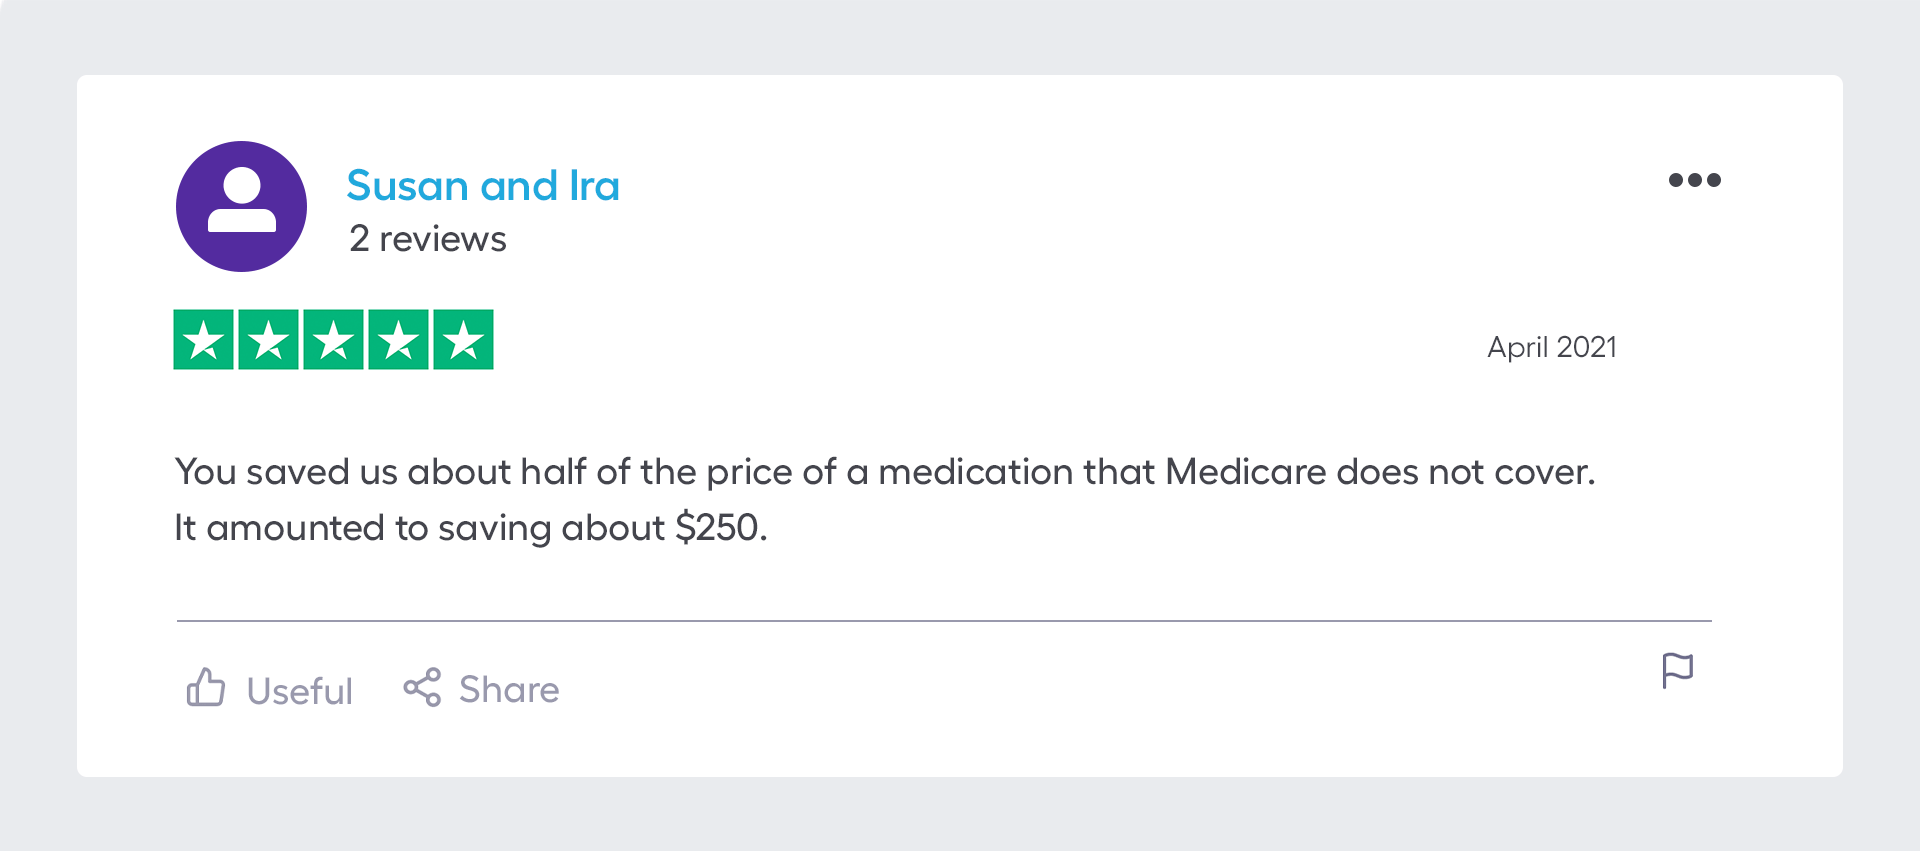 You saved us about half of the price of a medicationthat Medicare does not cover. It amounted to saving about $250.